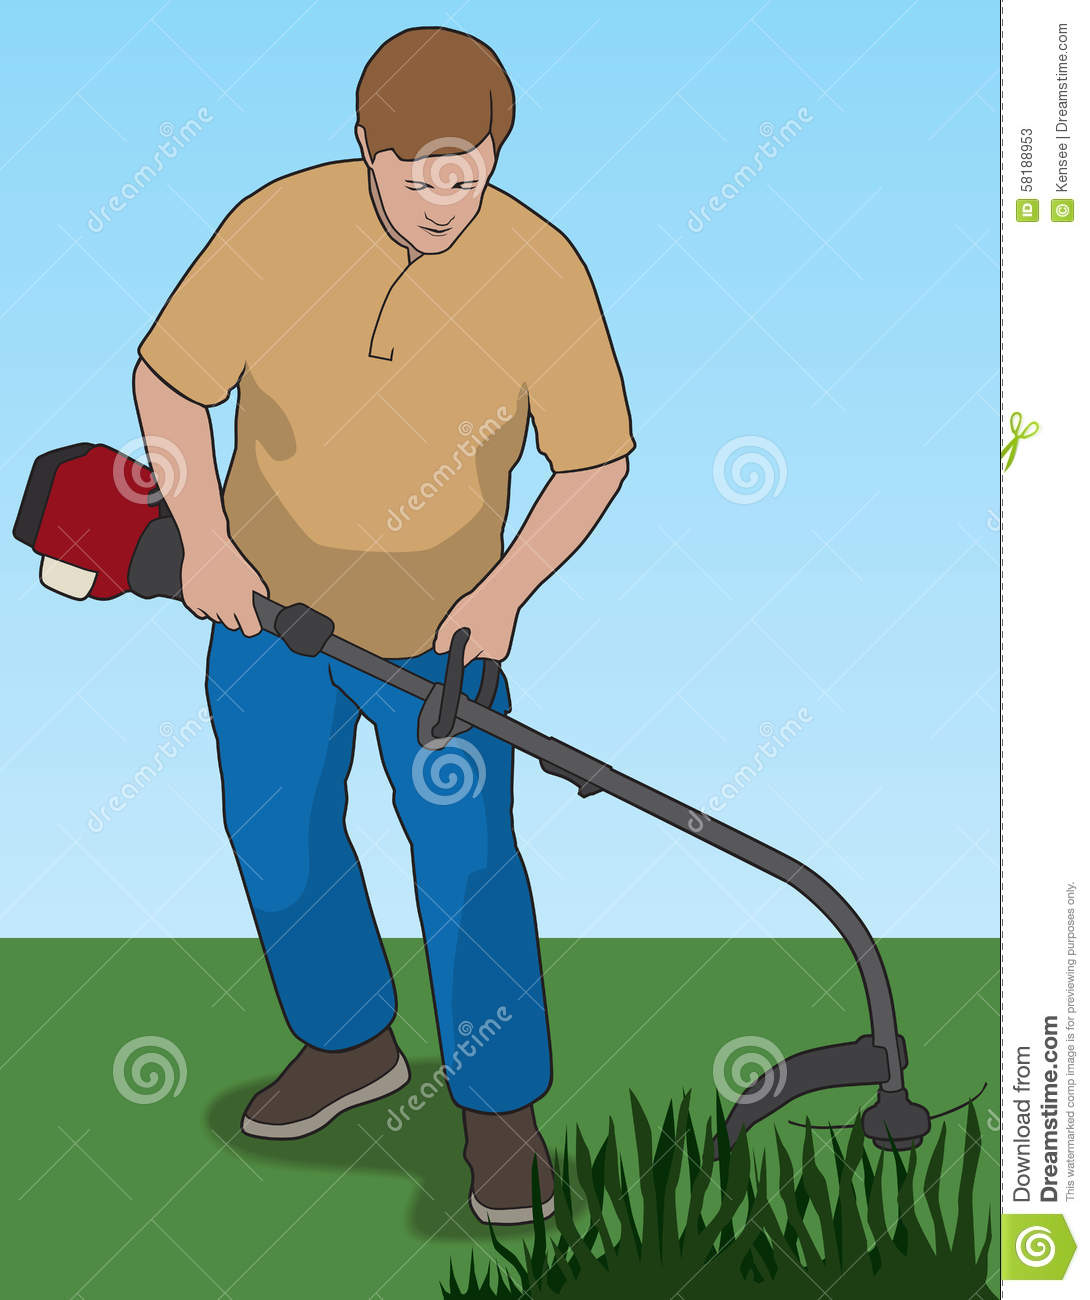 Man Using Weed Whacker To Trim Weeds In Yard